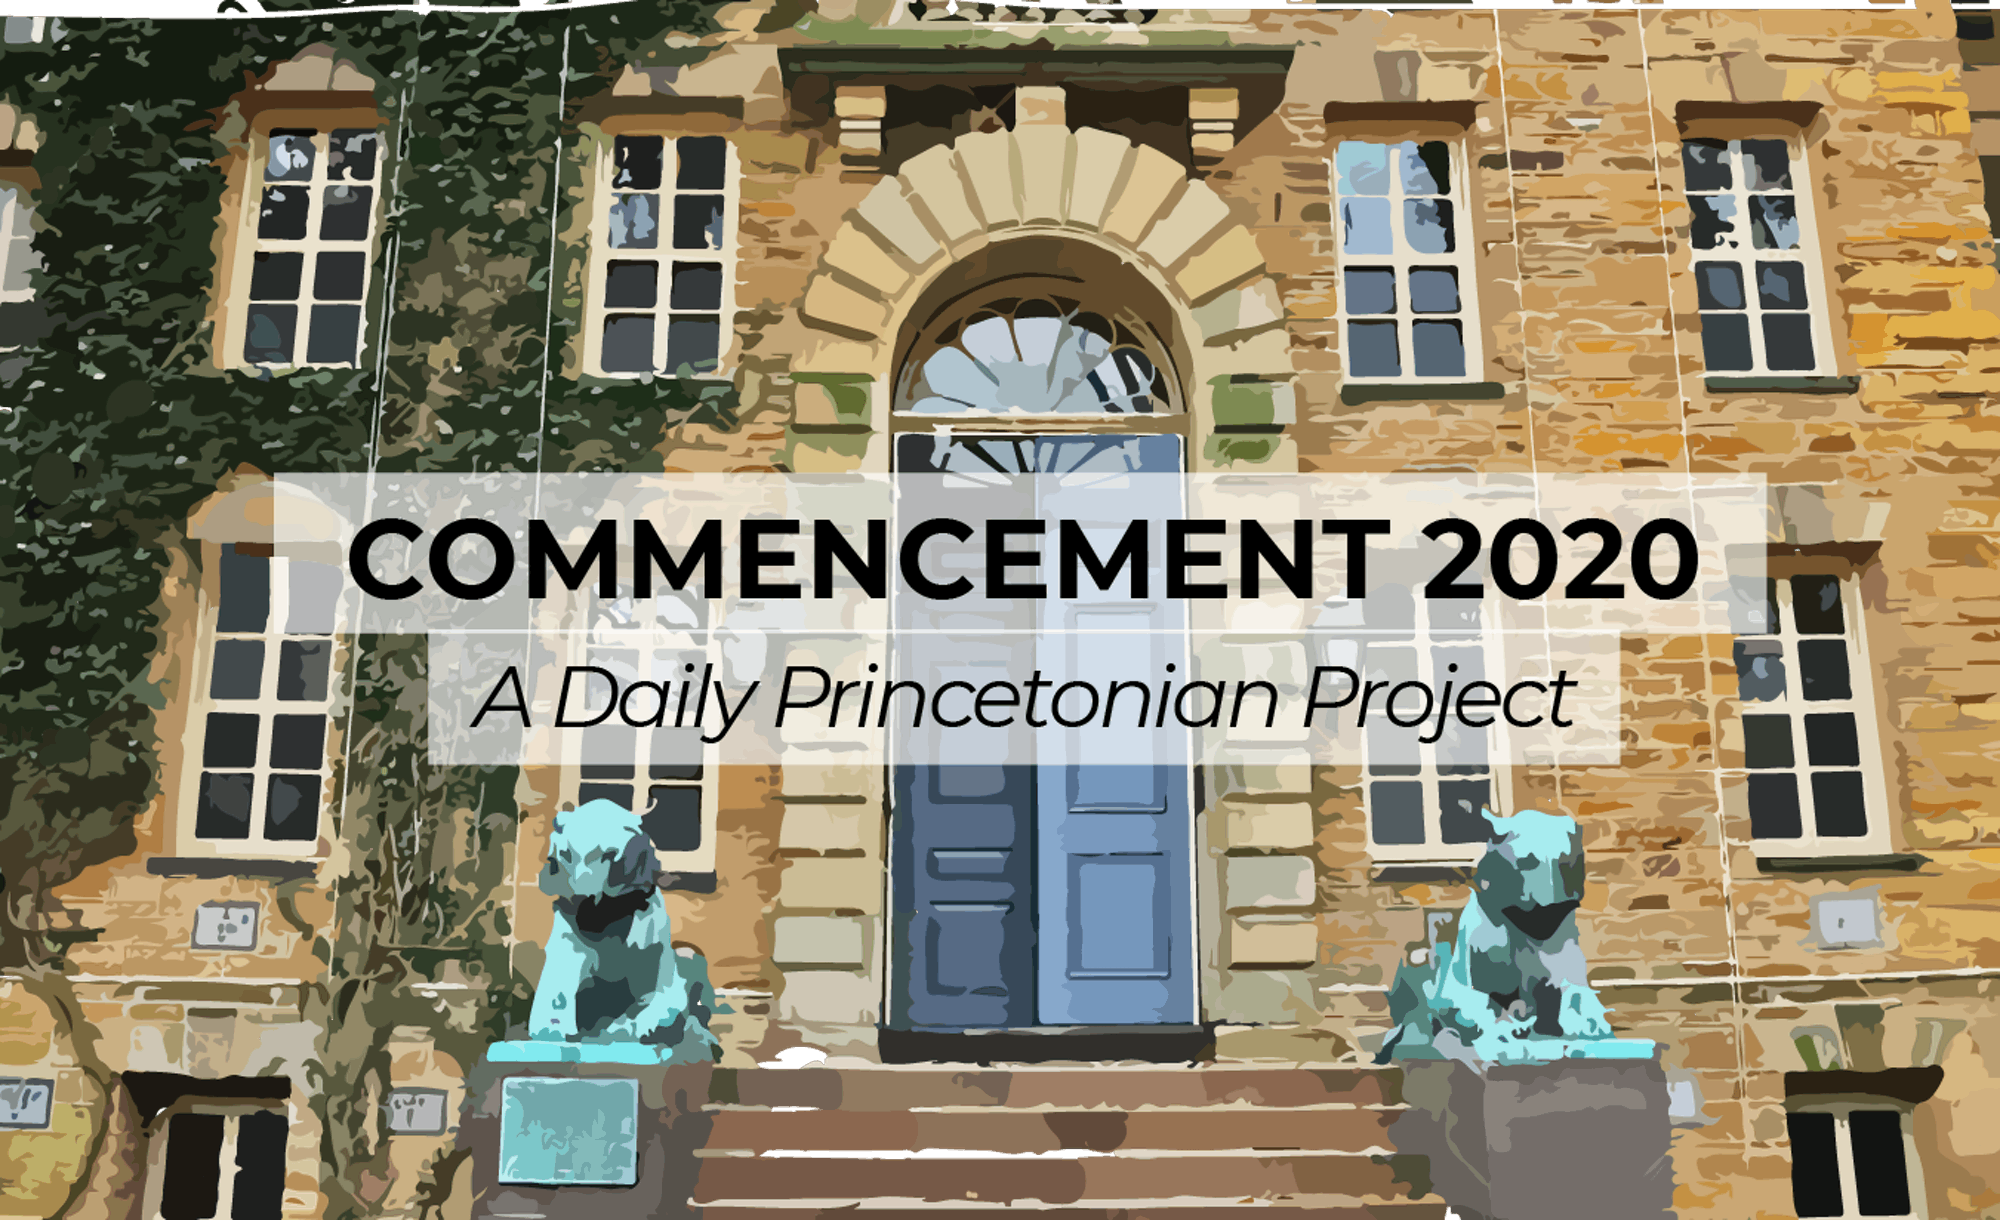 commencement-2020-a-daily-princetonian-project